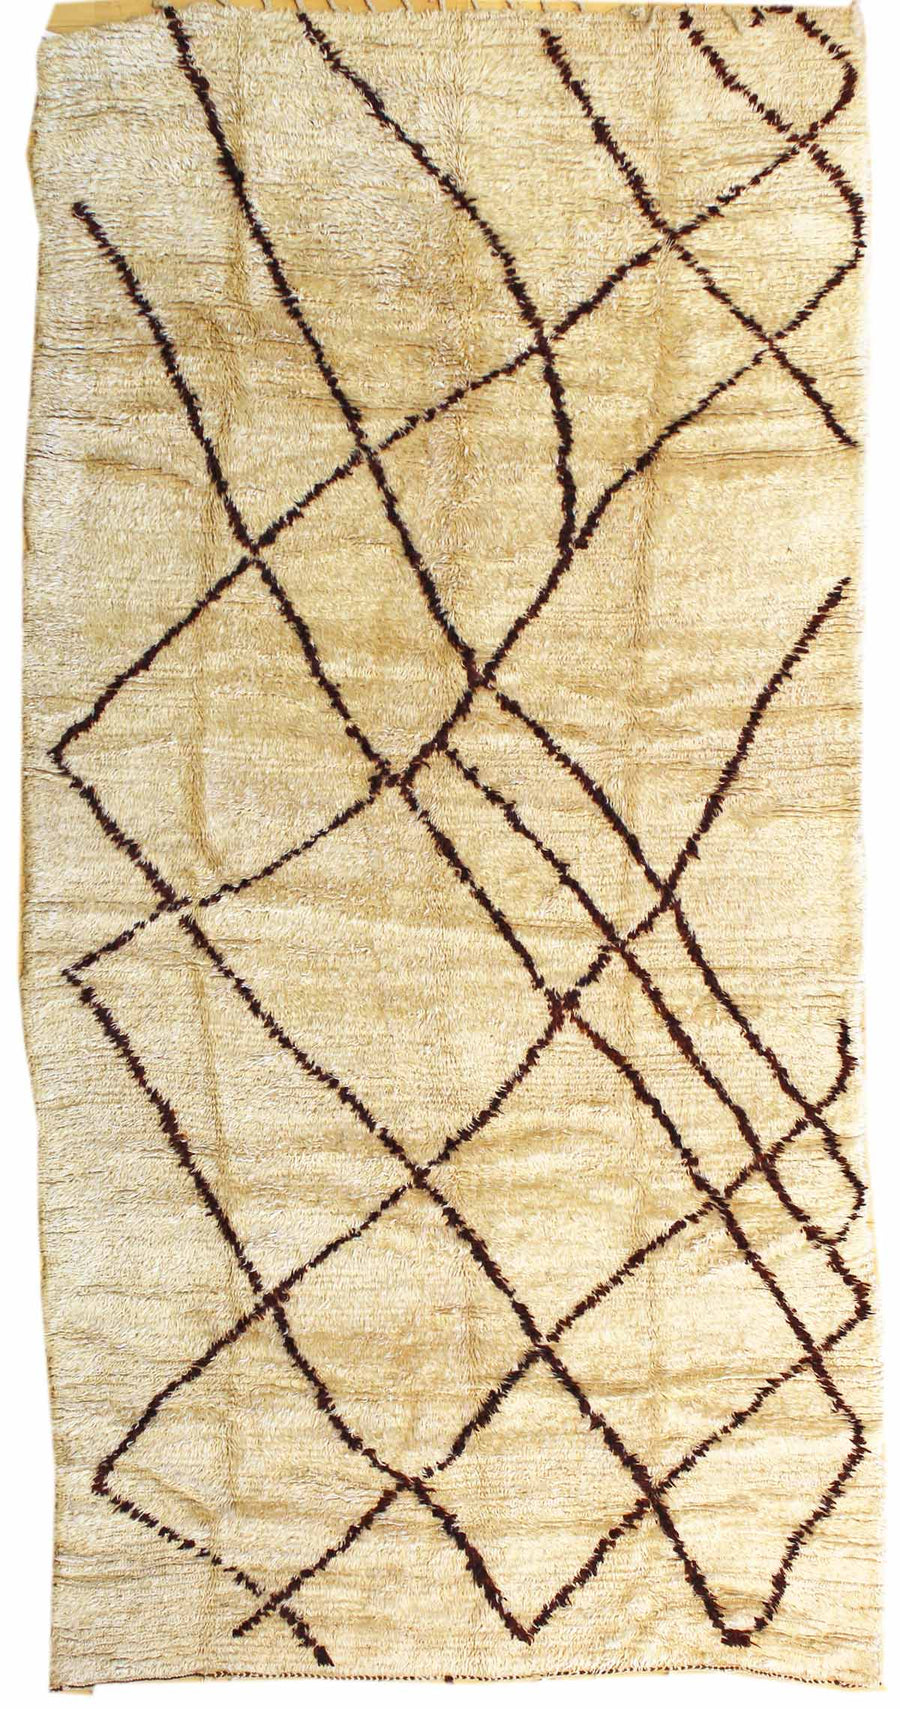 BENI OURAINE HANDKNOTTED RUG, J38946